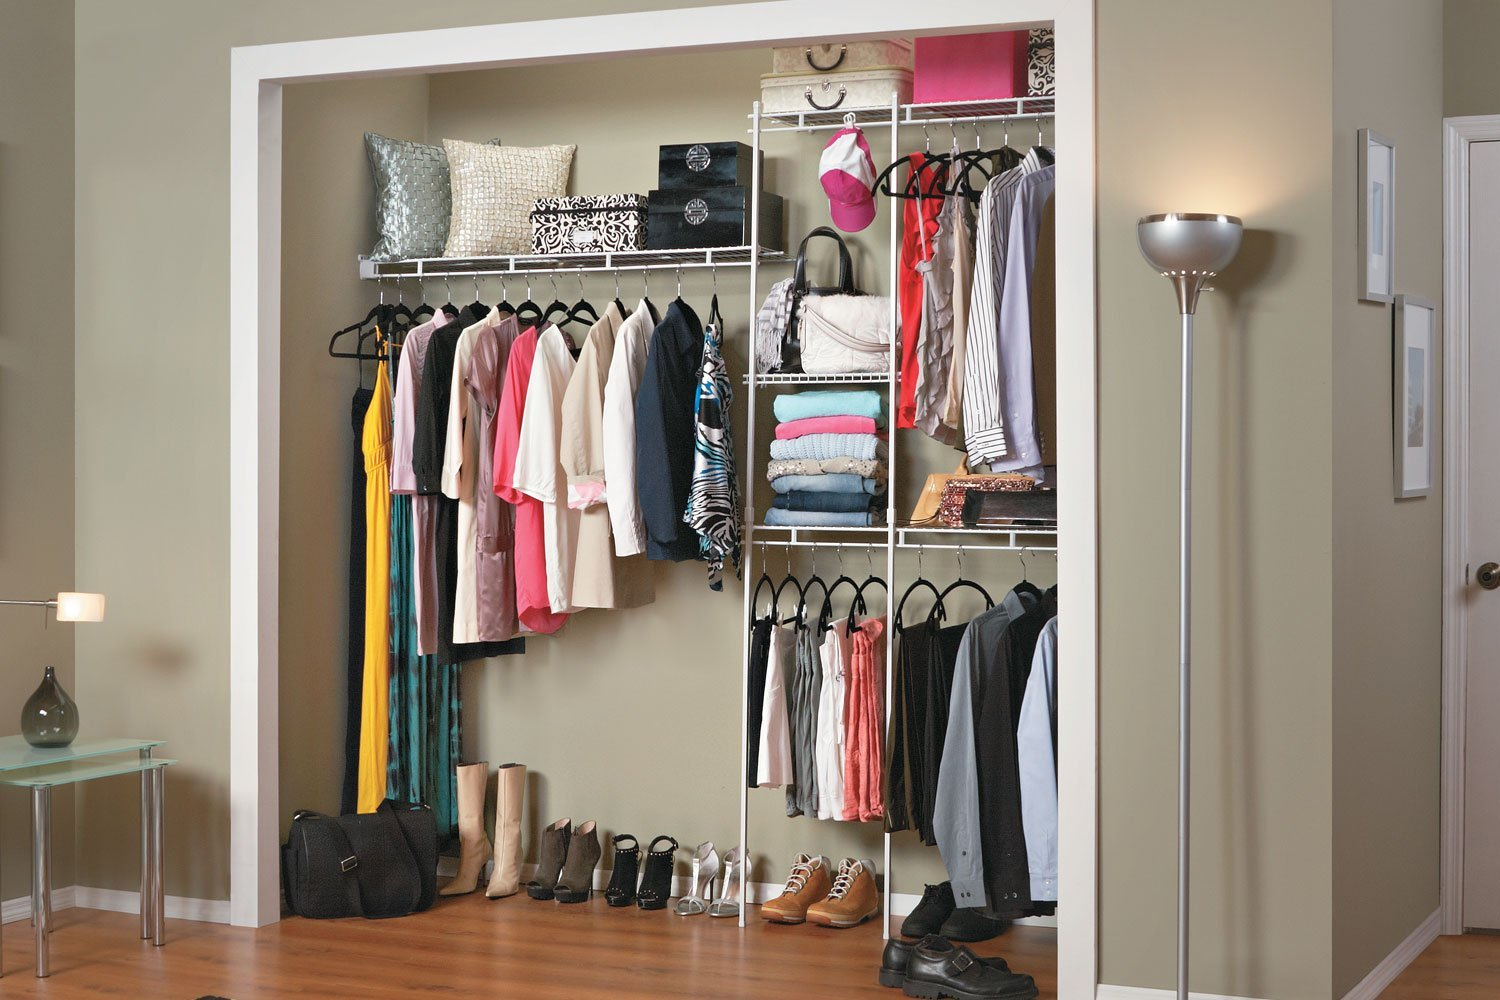 White Wire Closet Organizer Kit Adjustable Shelf Rack Storage Garment Clothes